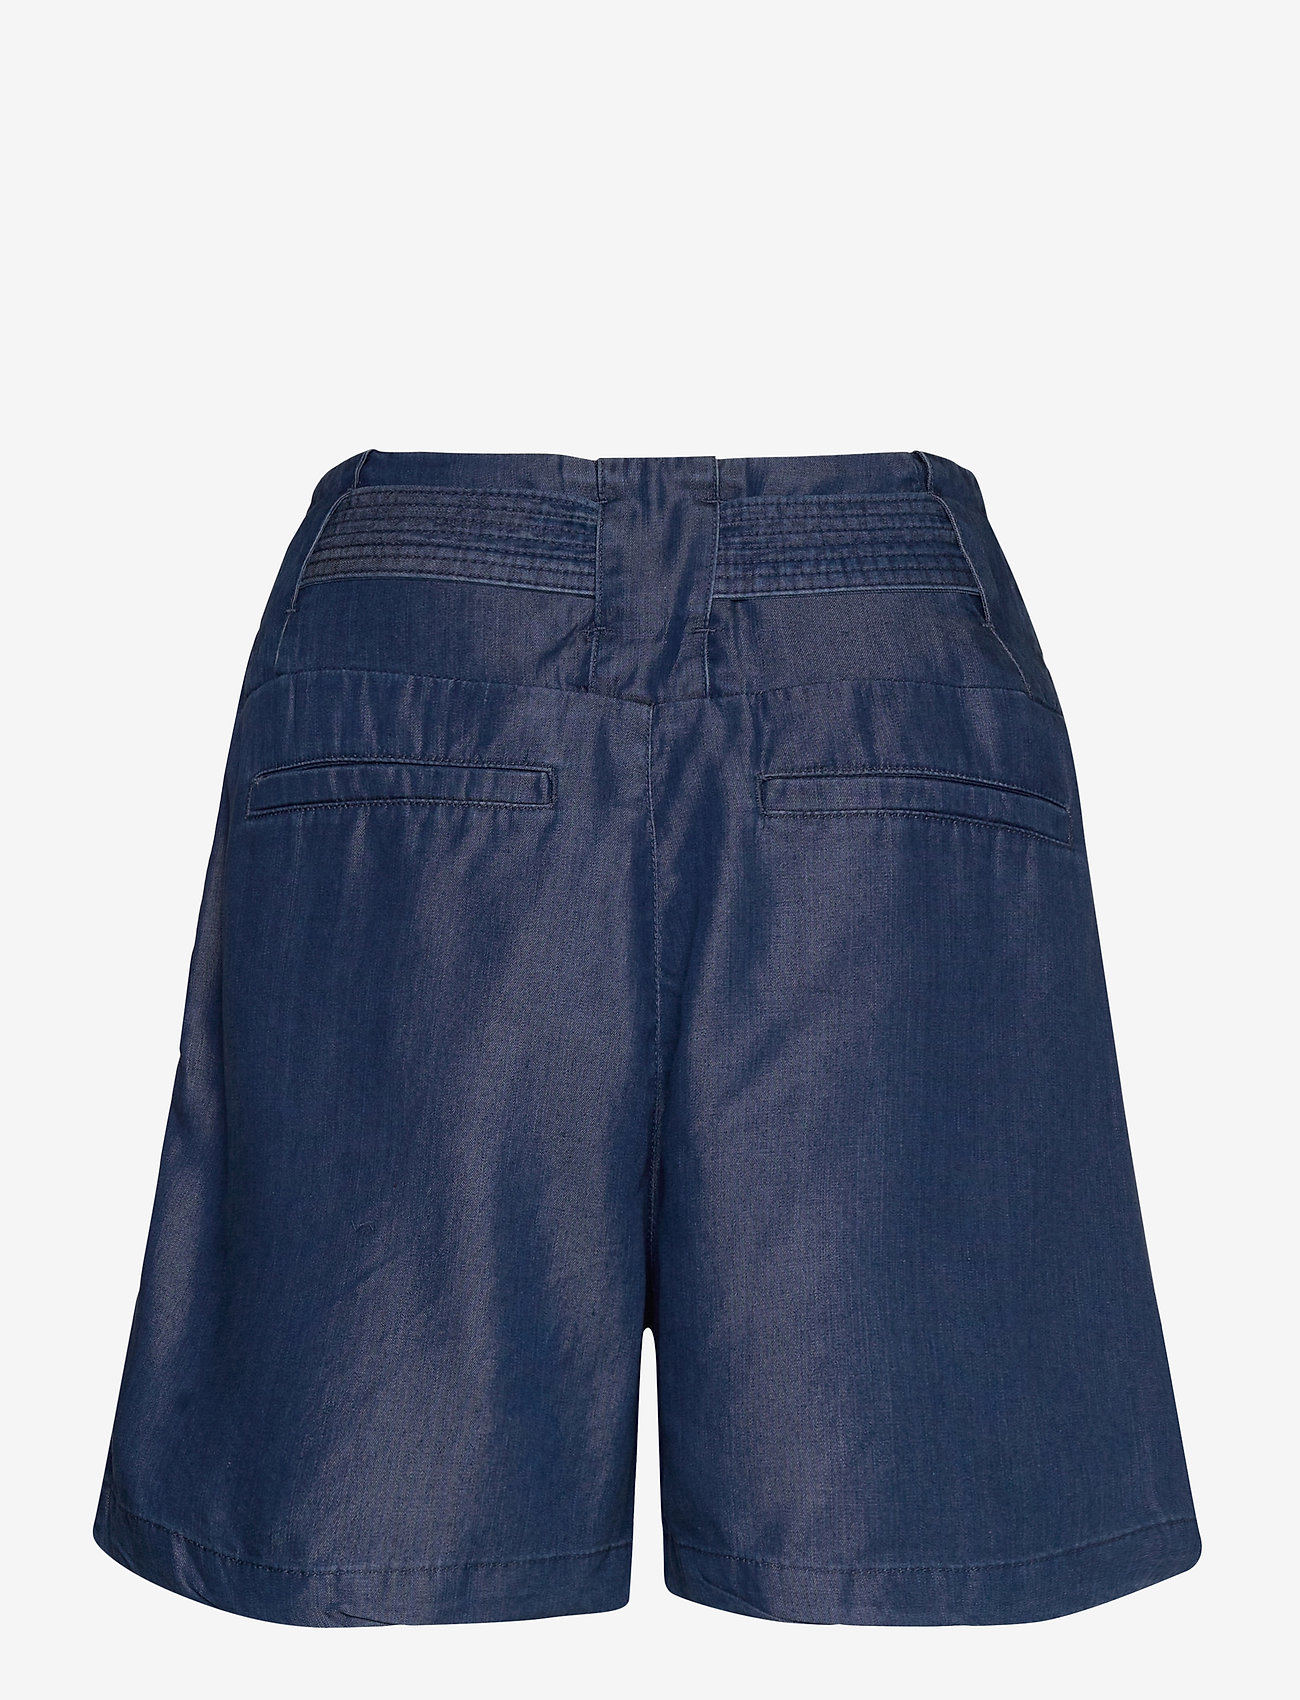 Shorts Denim (Blue Dark Wash) (349.99 kr) - Esprit Casual